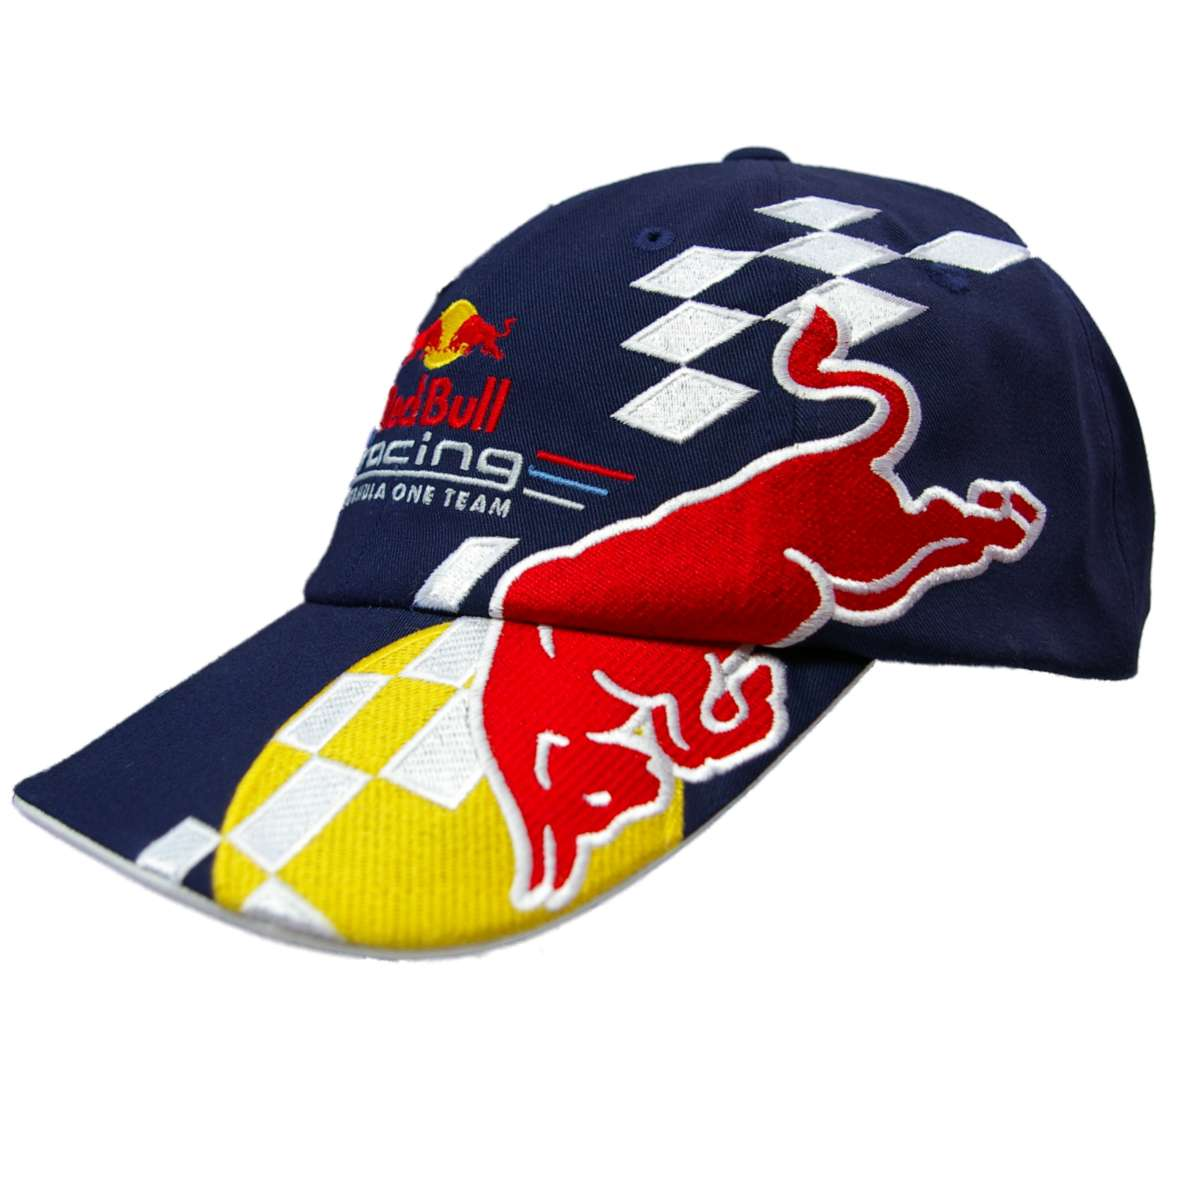 cap basecap kappe formel 1 formula one 1 red bull racing. Black Bedroom Furniture Sets. Home Design Ideas